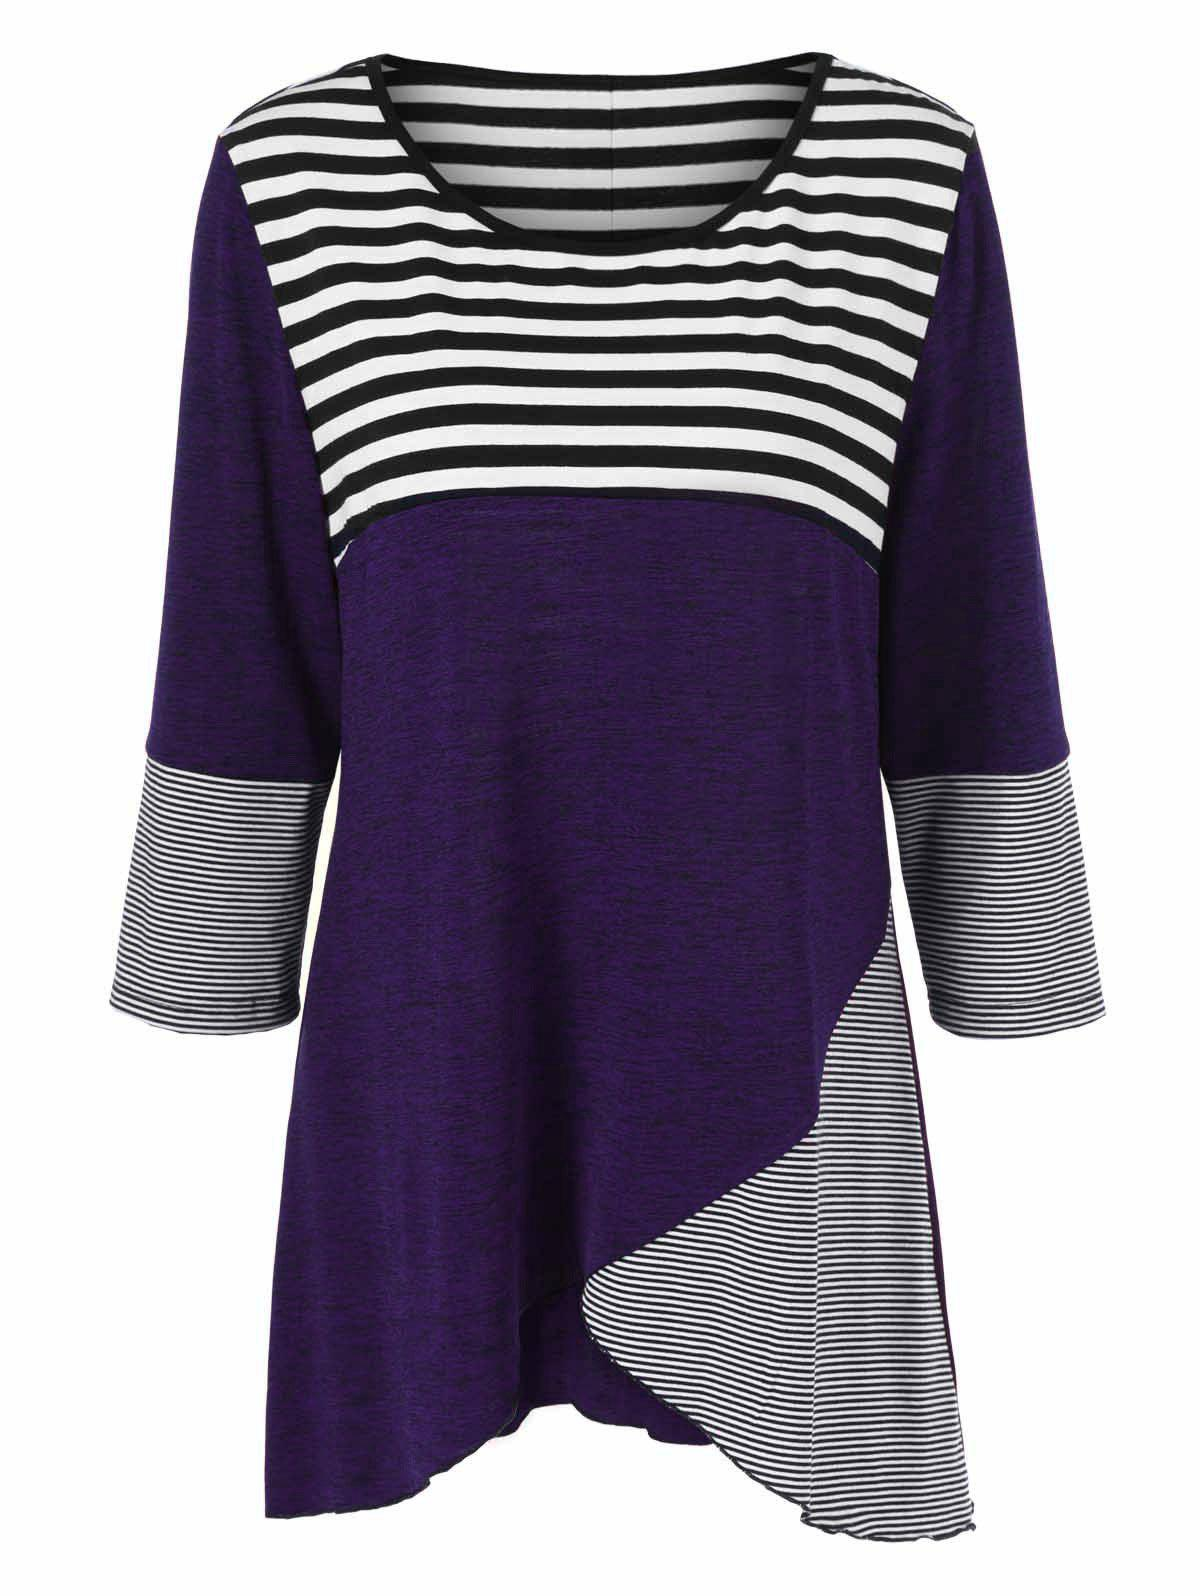 Plus Size Striped Tunic T-ShirtWOMEN<br><br>Size: 2XL; Color: CONCORD; Material: Polyester,Spandex; Shirt Length: Long; Sleeve Length: Three Quarter; Collar: Scoop Neck; Style: Casual; Season: Fall,Spring; Pattern Type: Striped; Weight: 0.3800kg; Package Contents: 1 x T-Shirt;